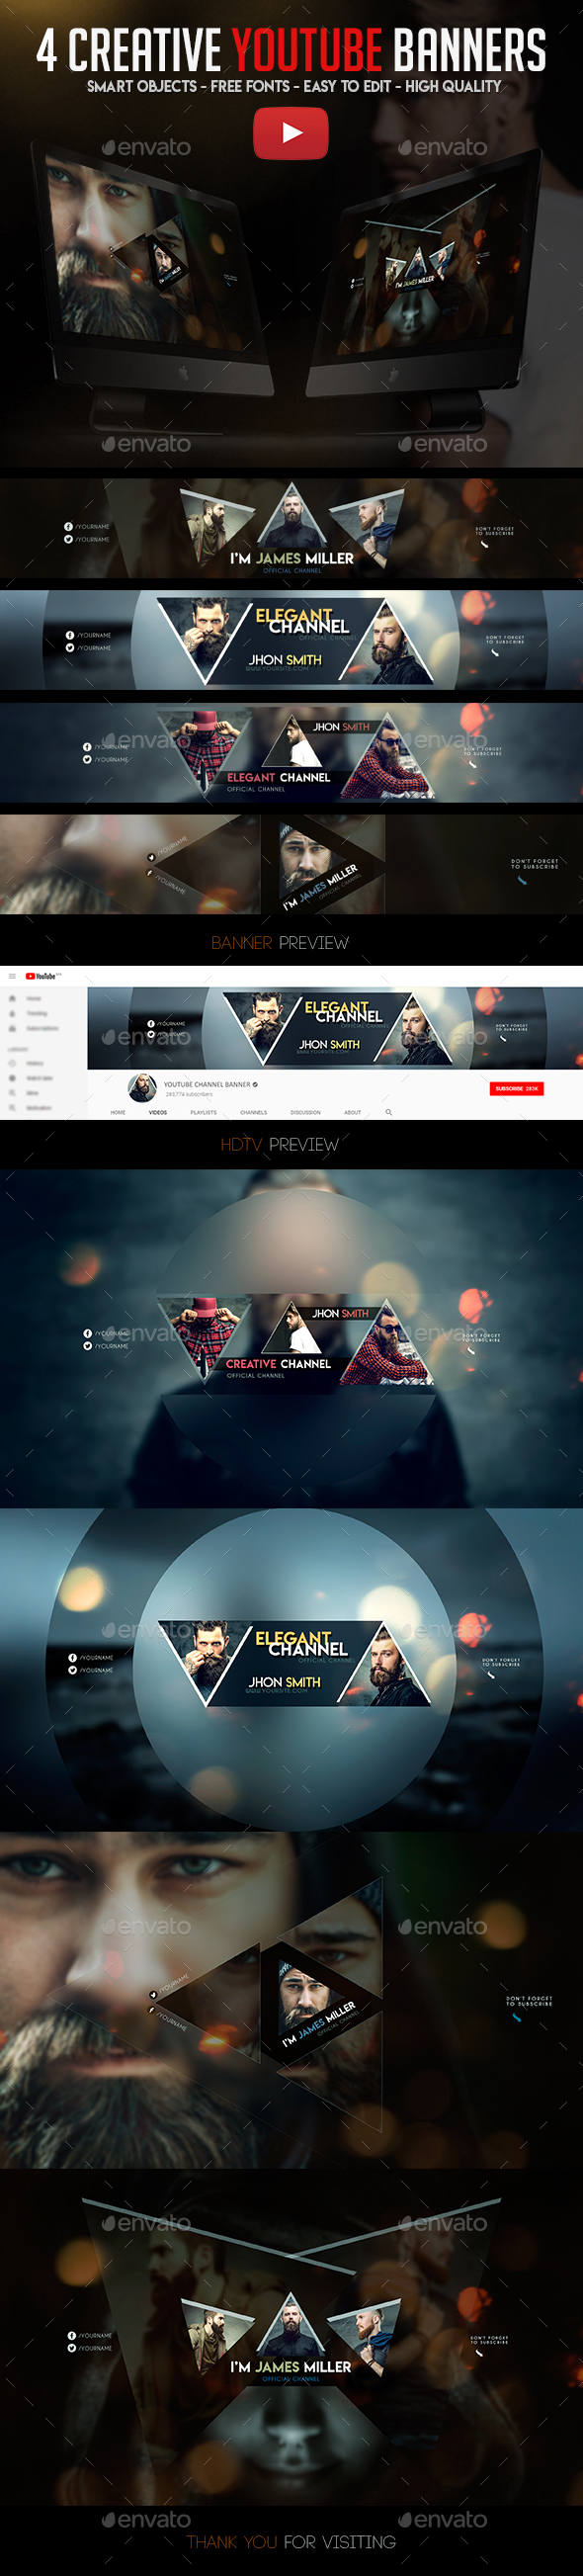 4 Creative YouTube Banners - YouTube Social Media